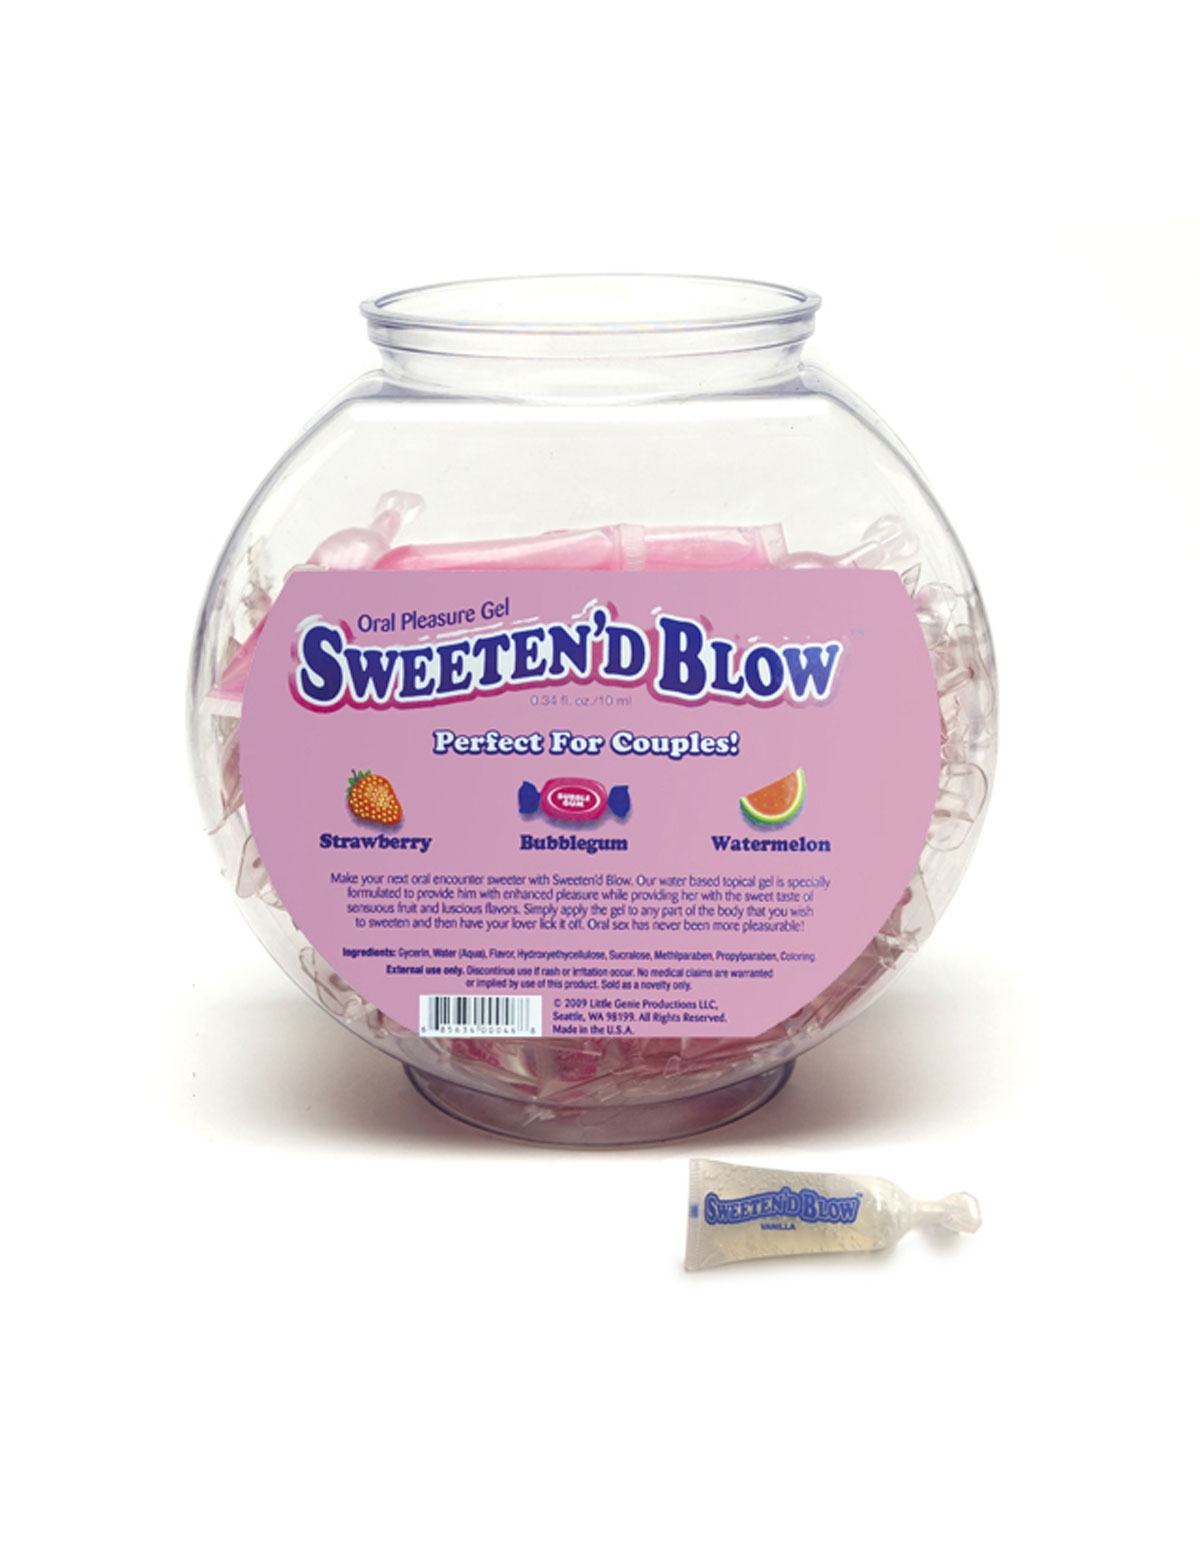 Sweeten D Blow Pillow Pack